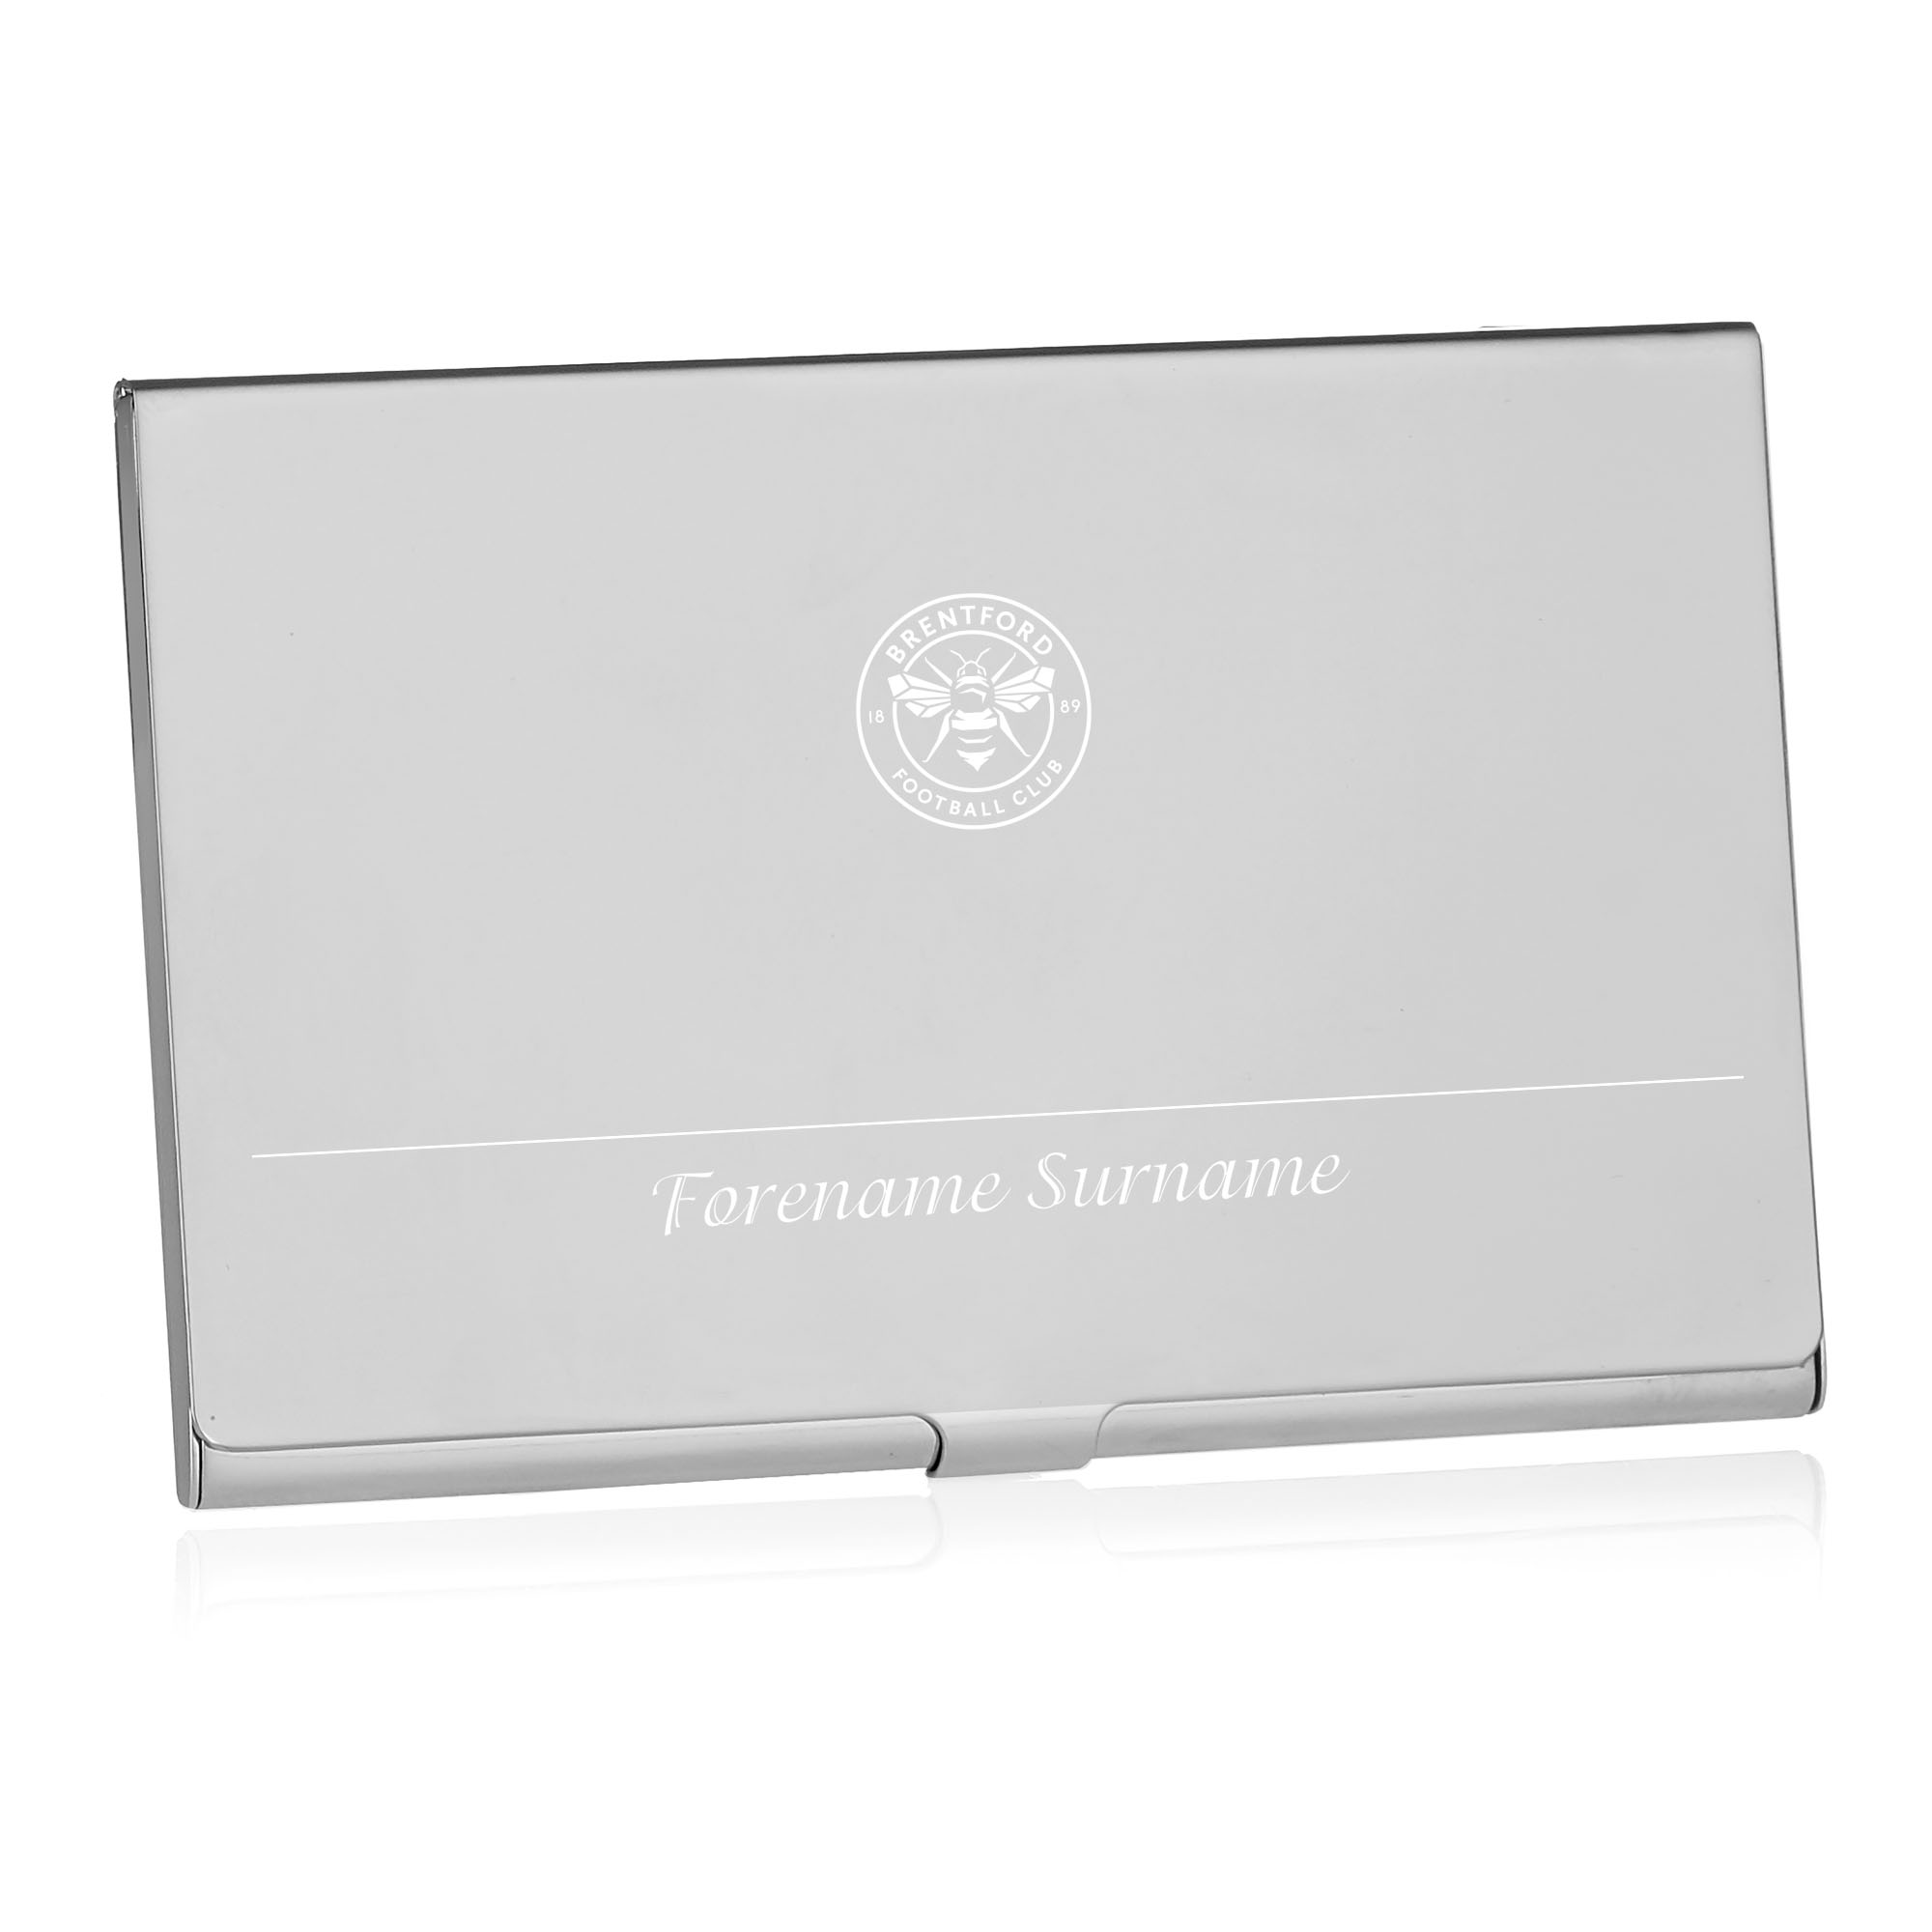 Brentford FC Executive Business Card Holder